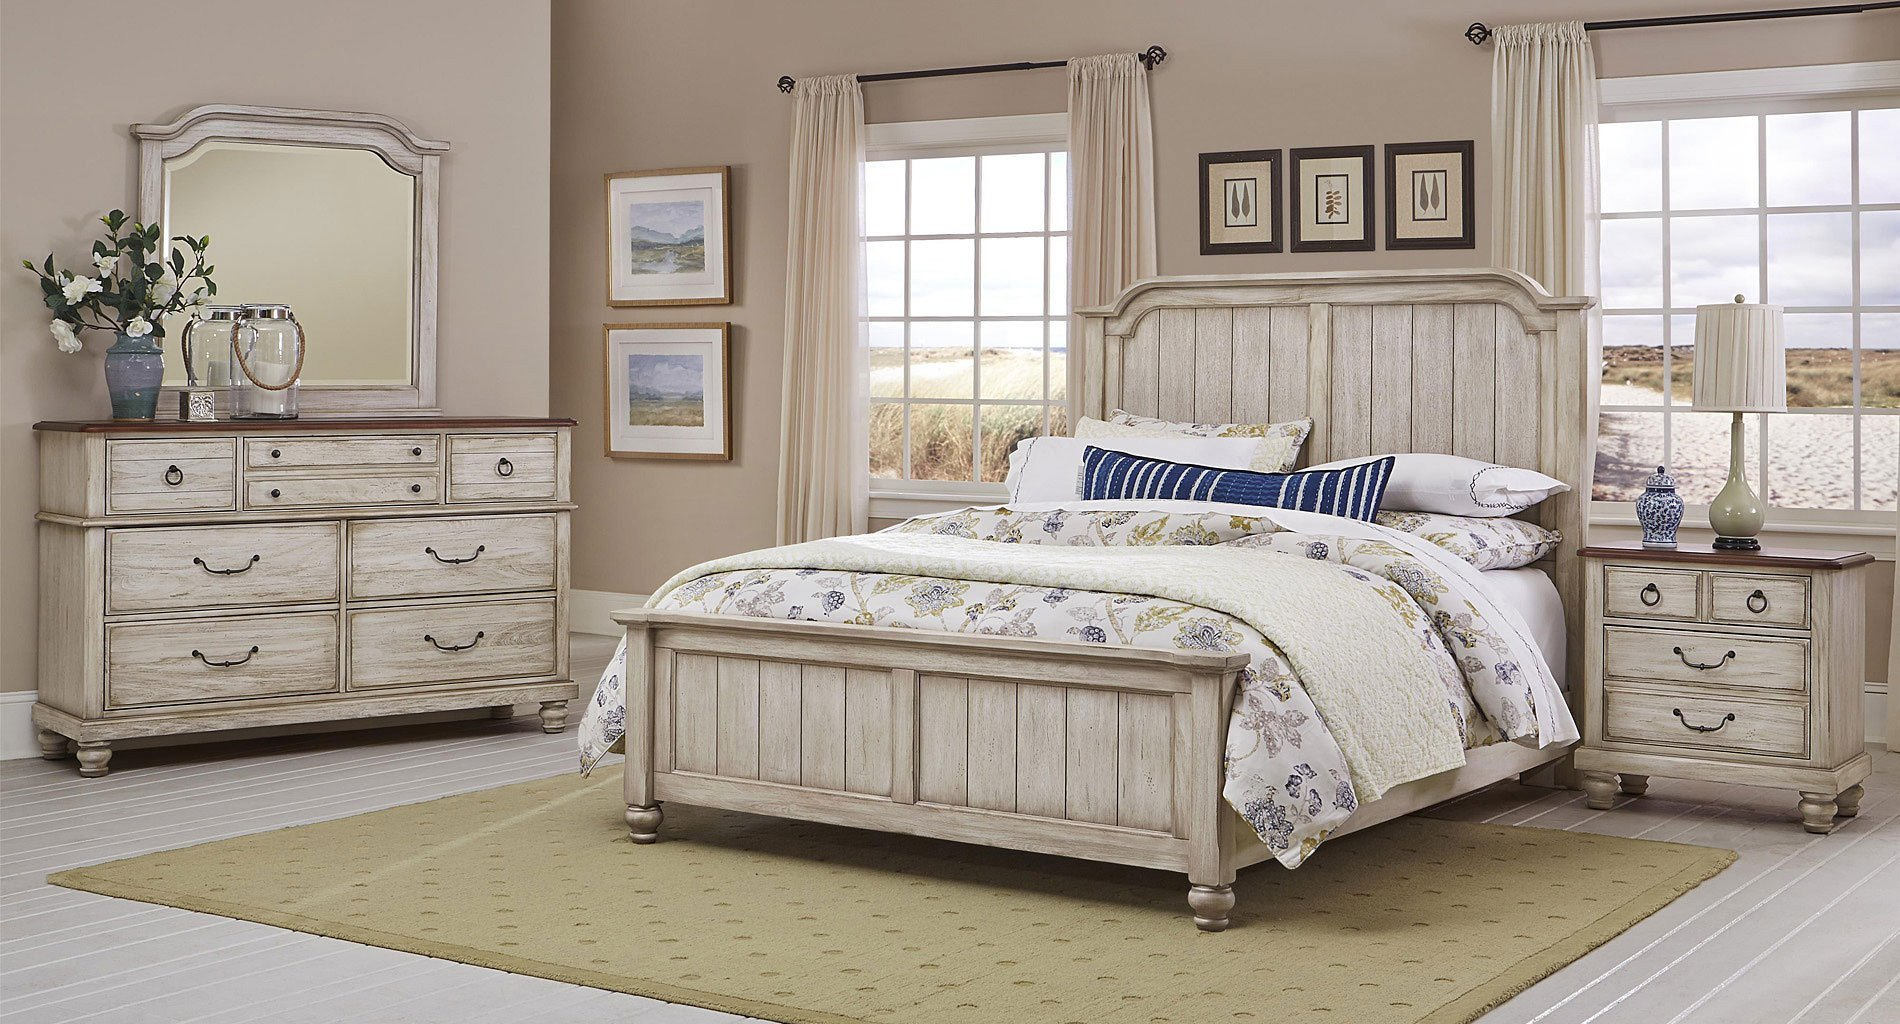 Off White Bedroom Furniture Lovely Distressed F White Bedroom Furniture